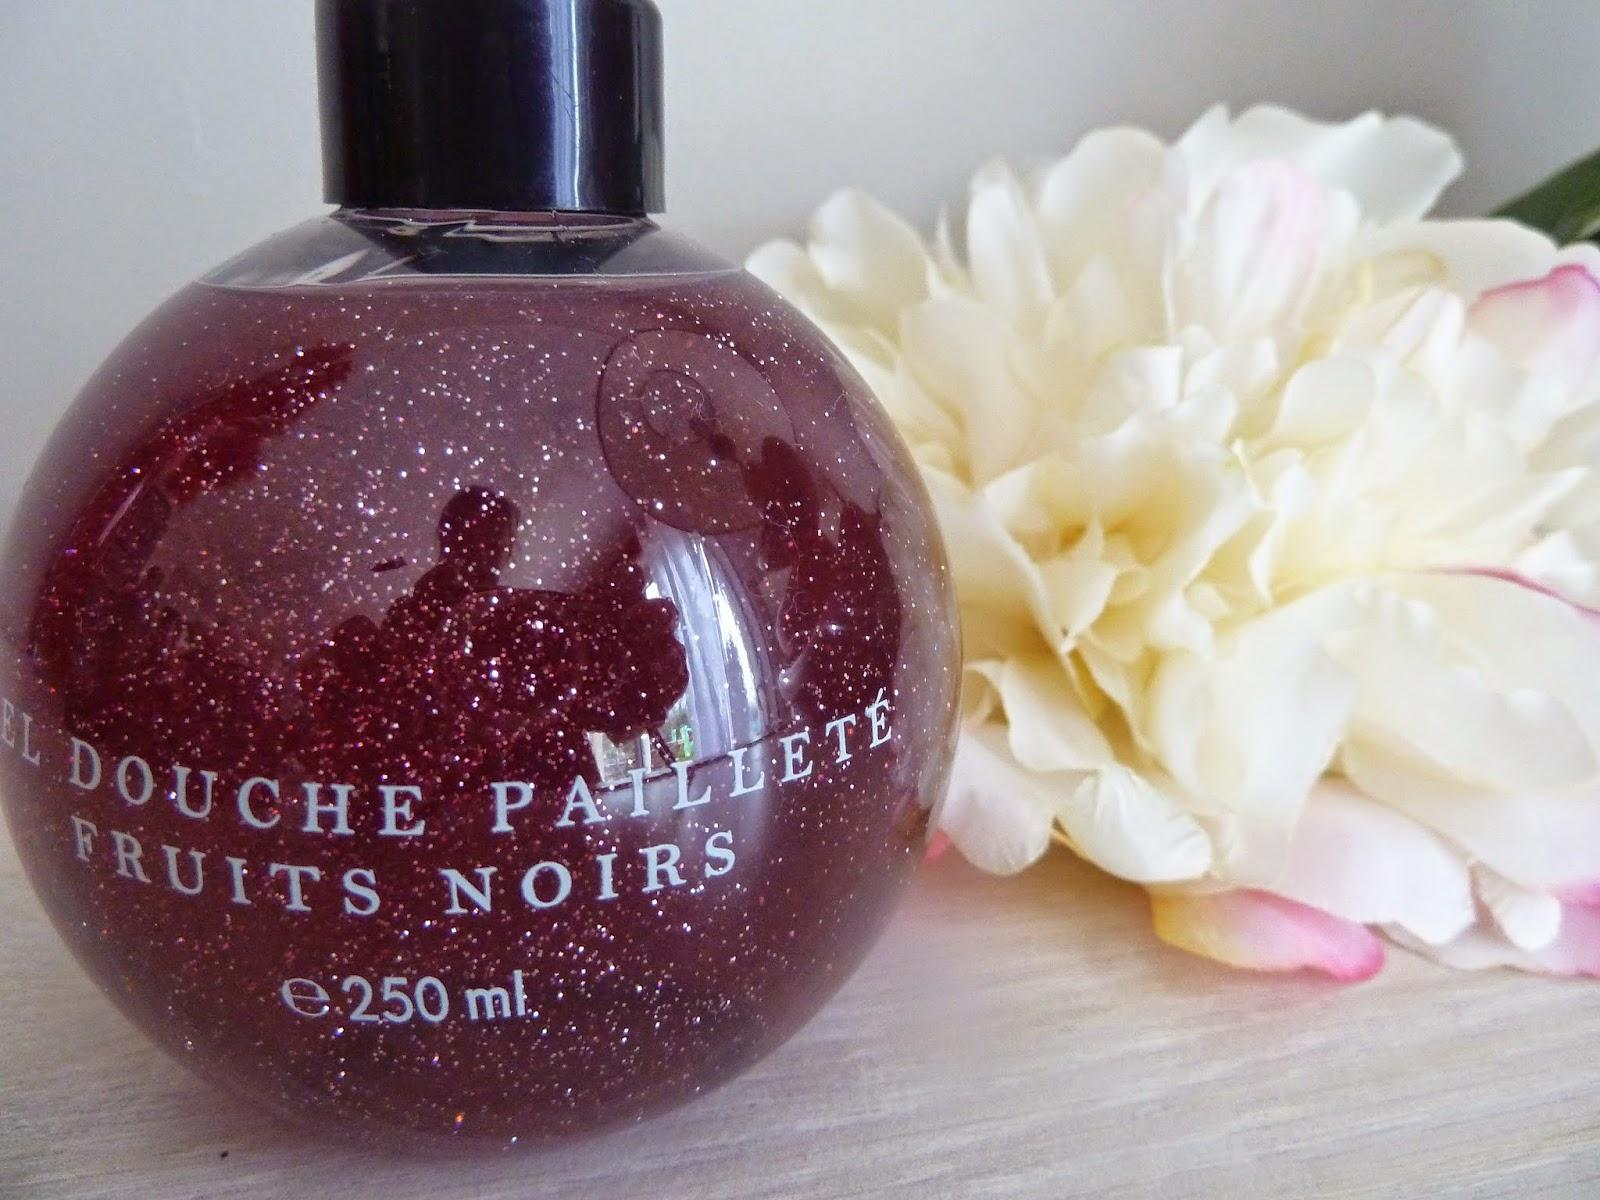 Collection Fruits Noirs - Yves Rocher